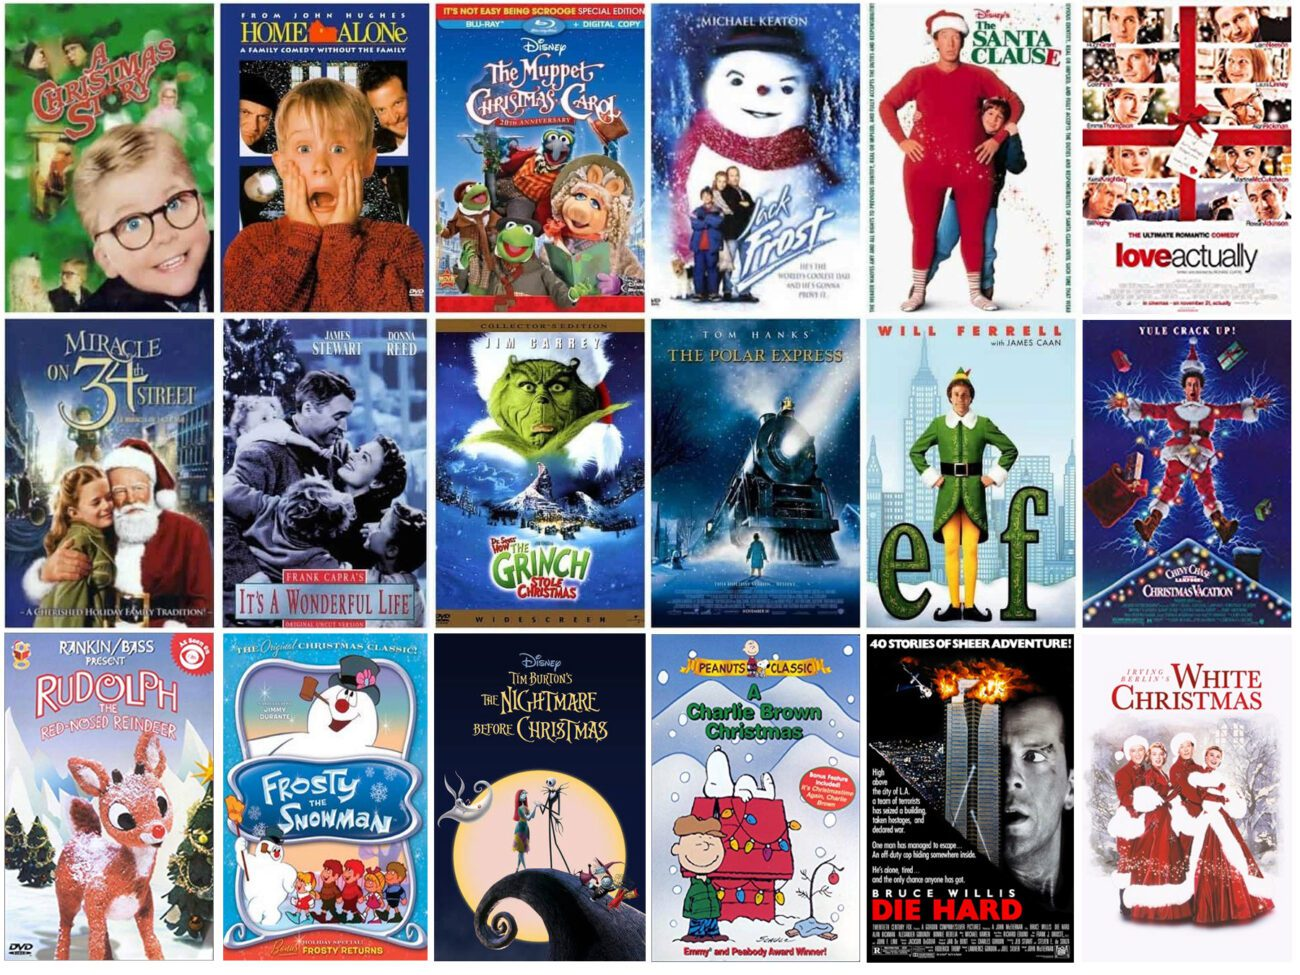 We know, we know. It's only September. Still, struggling to find a good Netflix Christmas movie? We have suggestions for other streaming services.